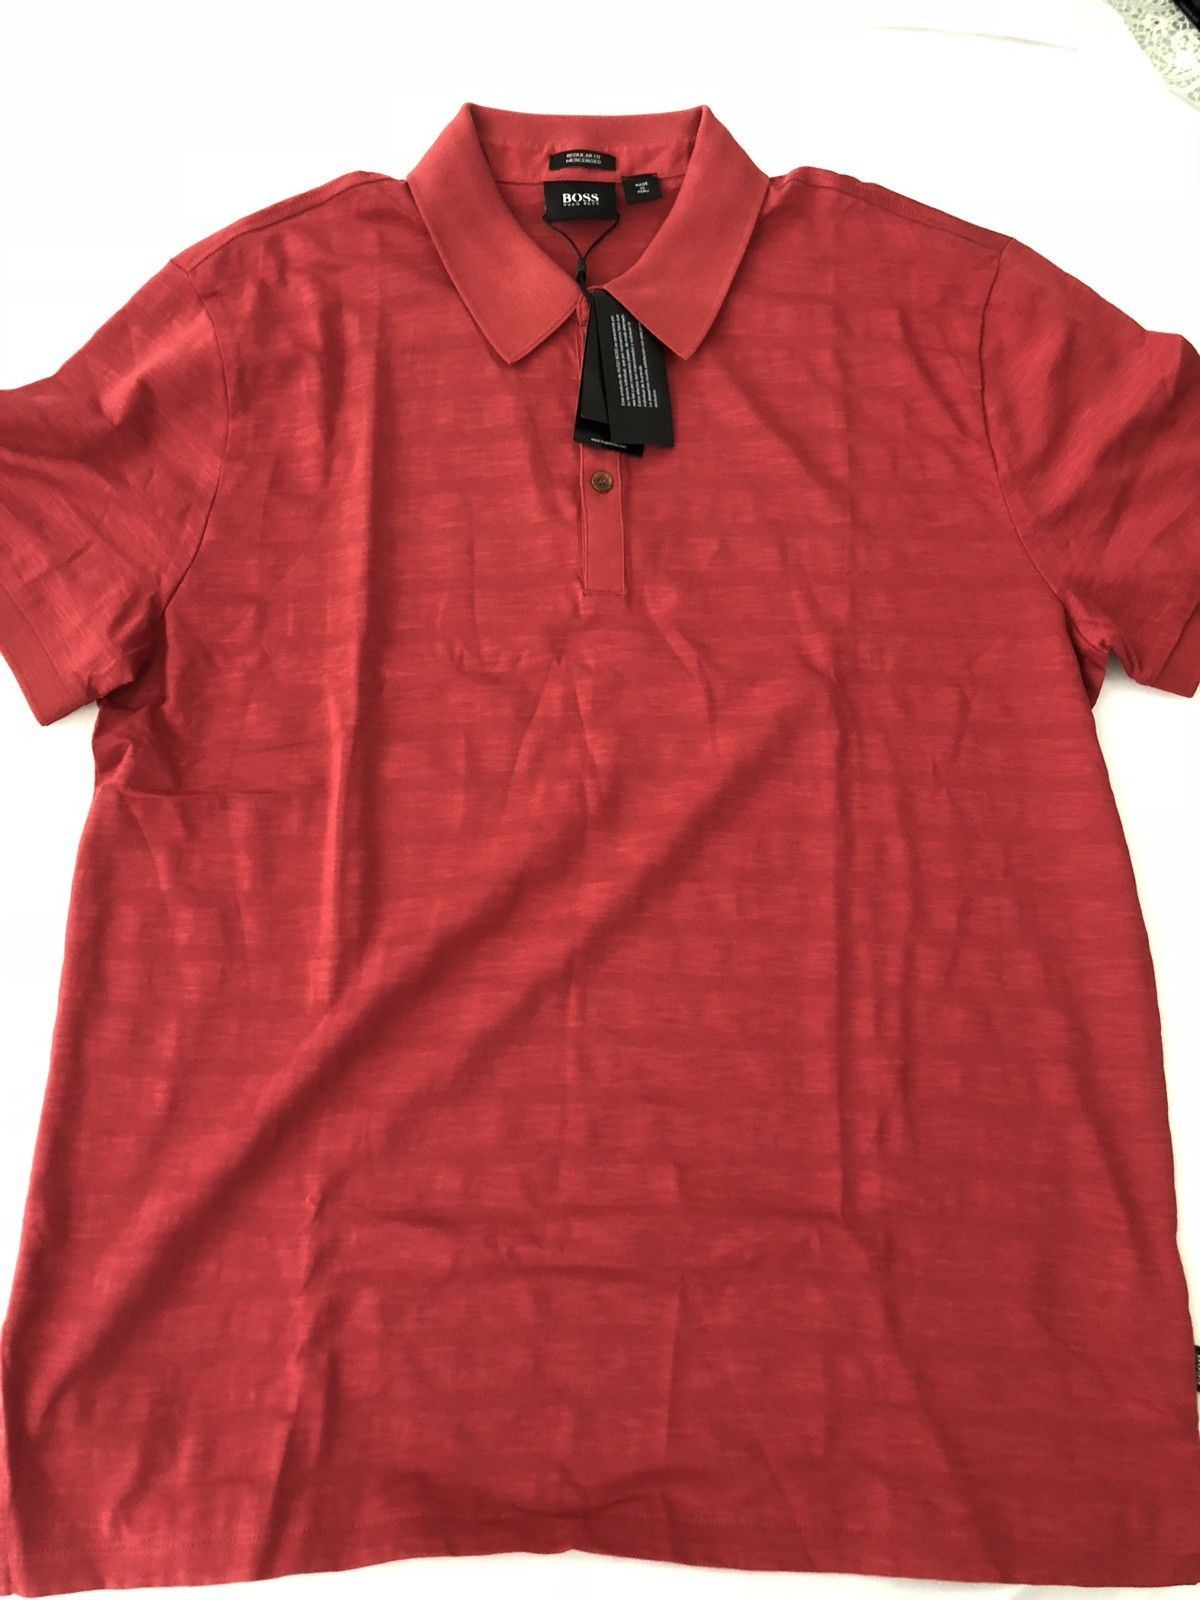 NWT $185 BOSS Hugo Boss Genova 24 Regular Fit Polo Shirt Red XL